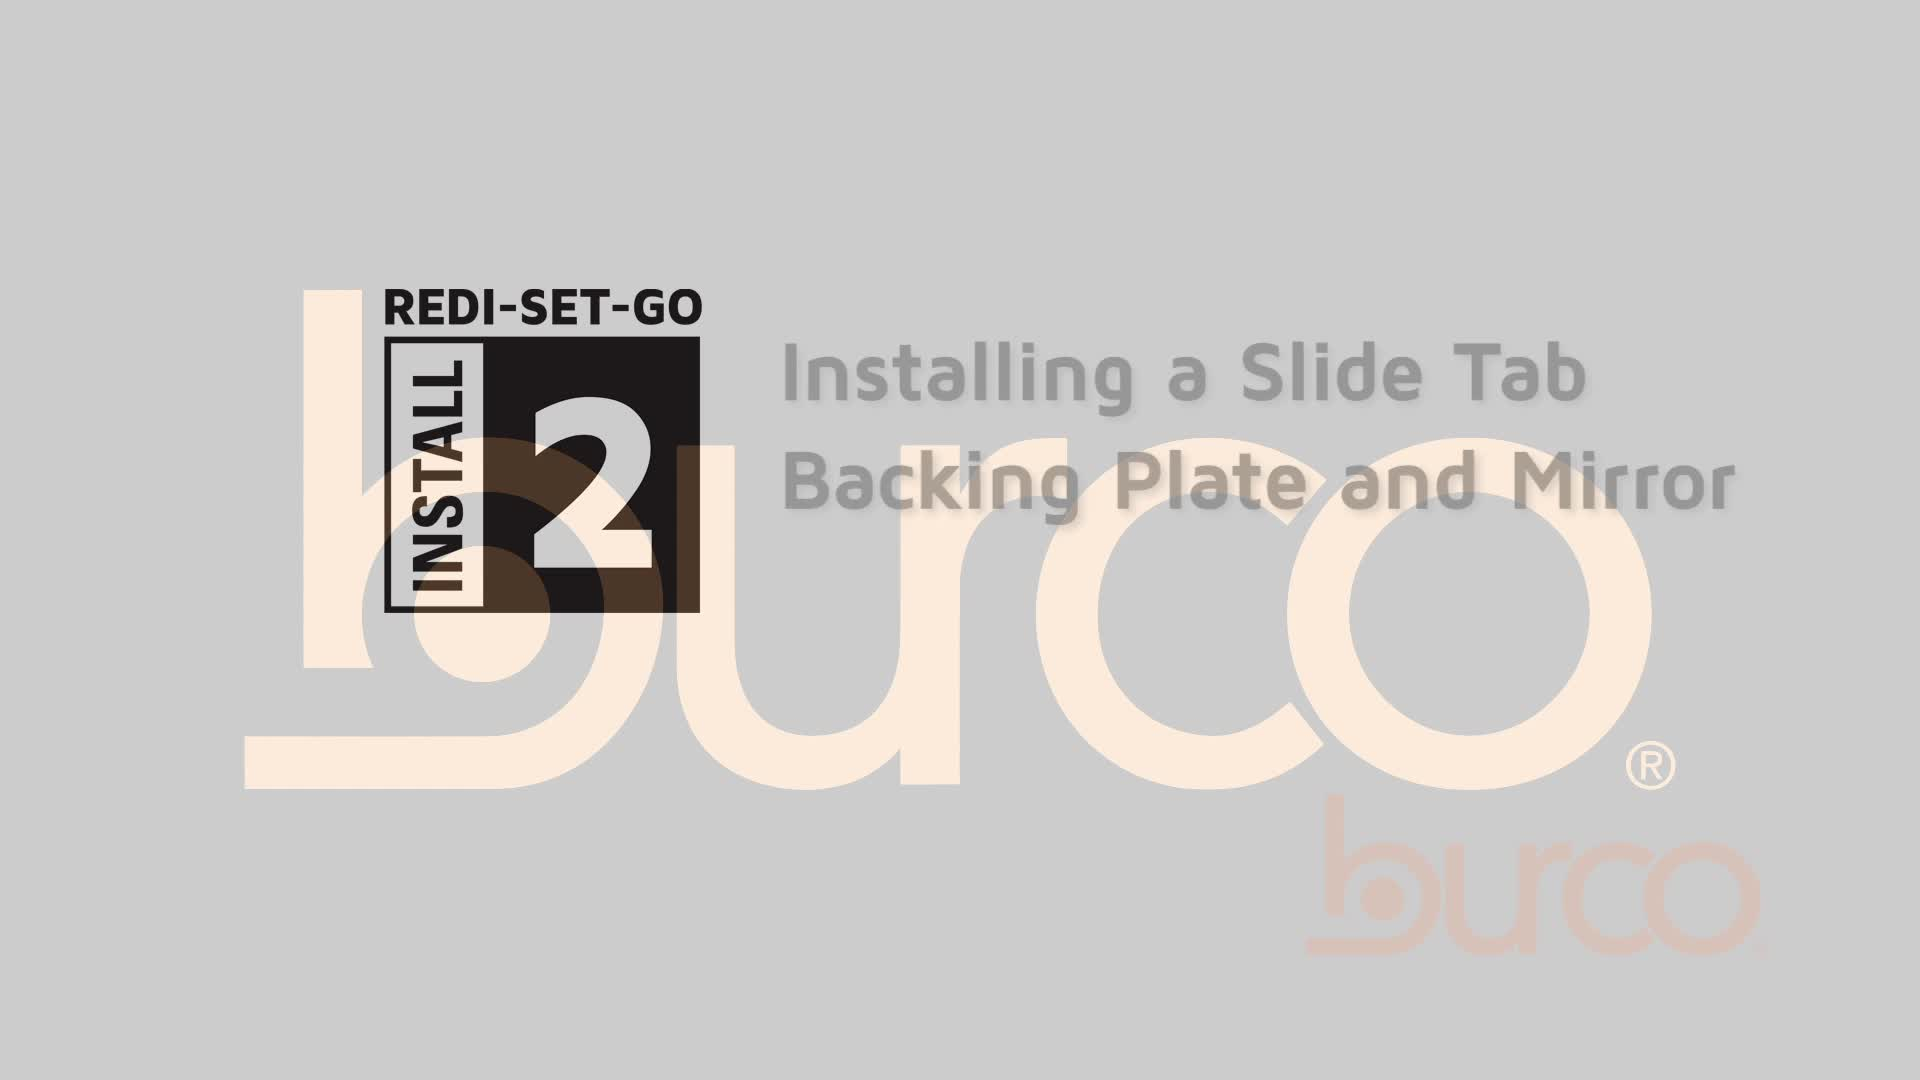 Installment of a Slide Tab Backing Plate and Mirror